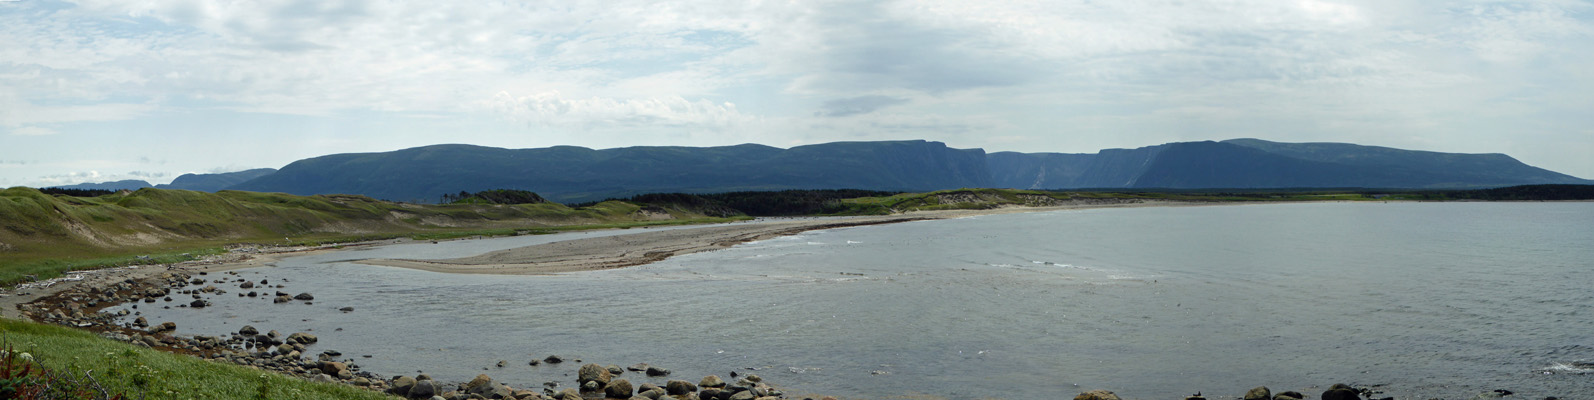 Mouth of Western Brook